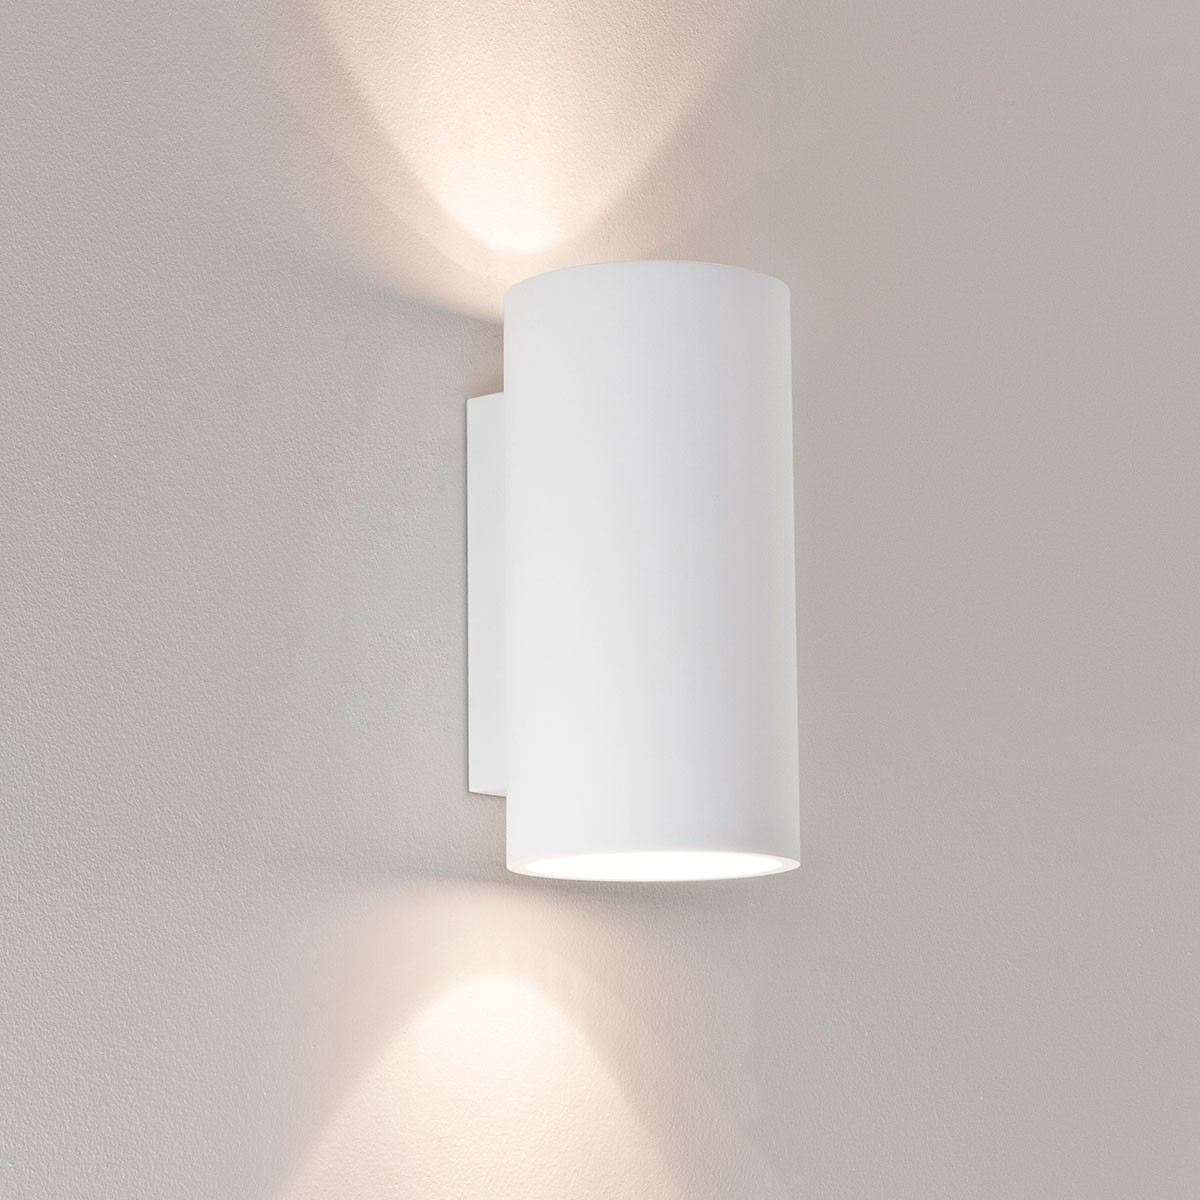 Astro Bologna 240 Plaster Wall Light at UK Electrical Supplies.